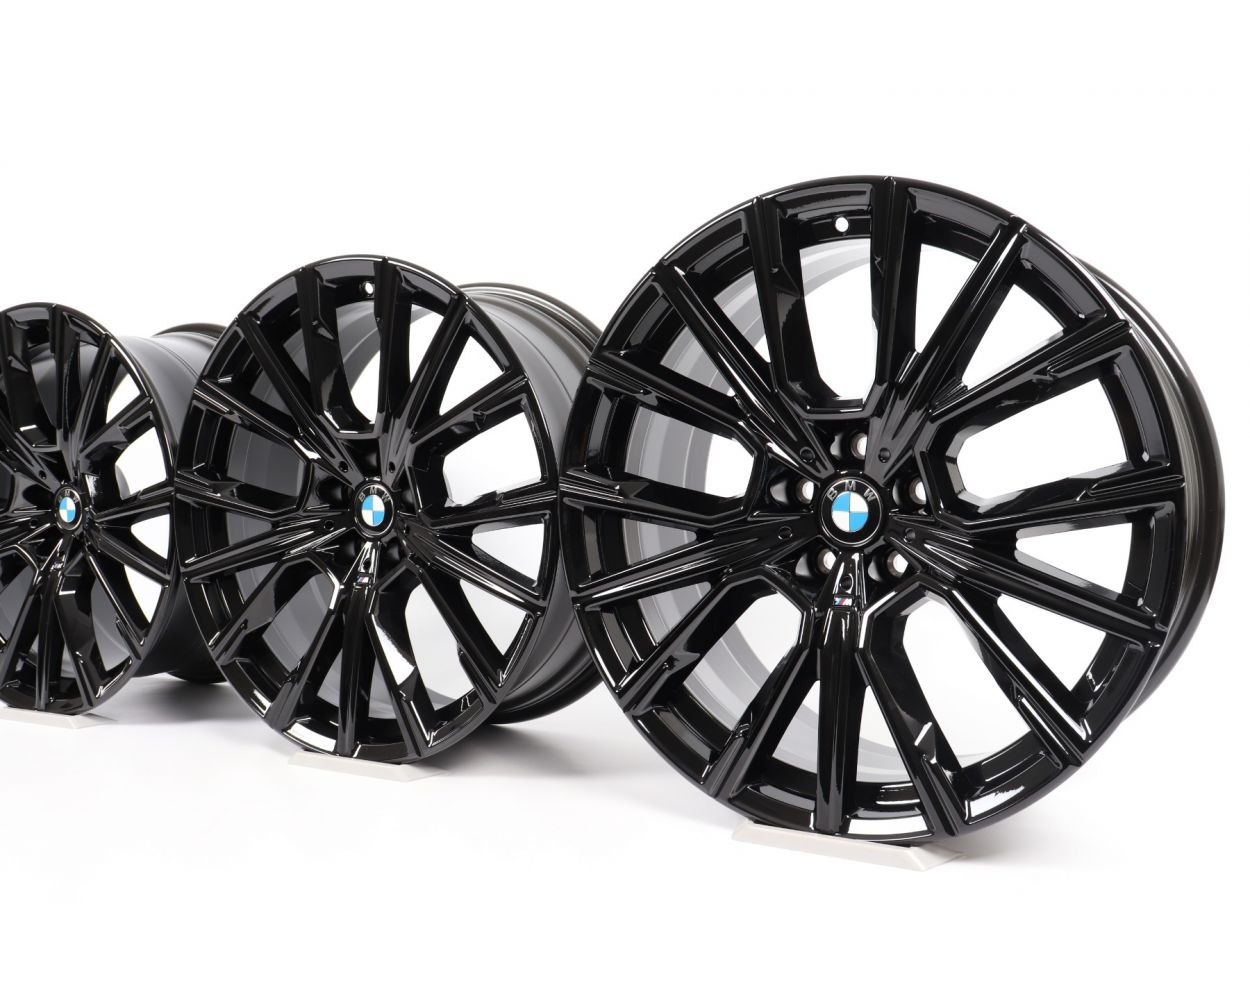 4x Bmw Alloy Rims 6 Series G32 7 Series G11 G12 20 Inch Styling 817 M